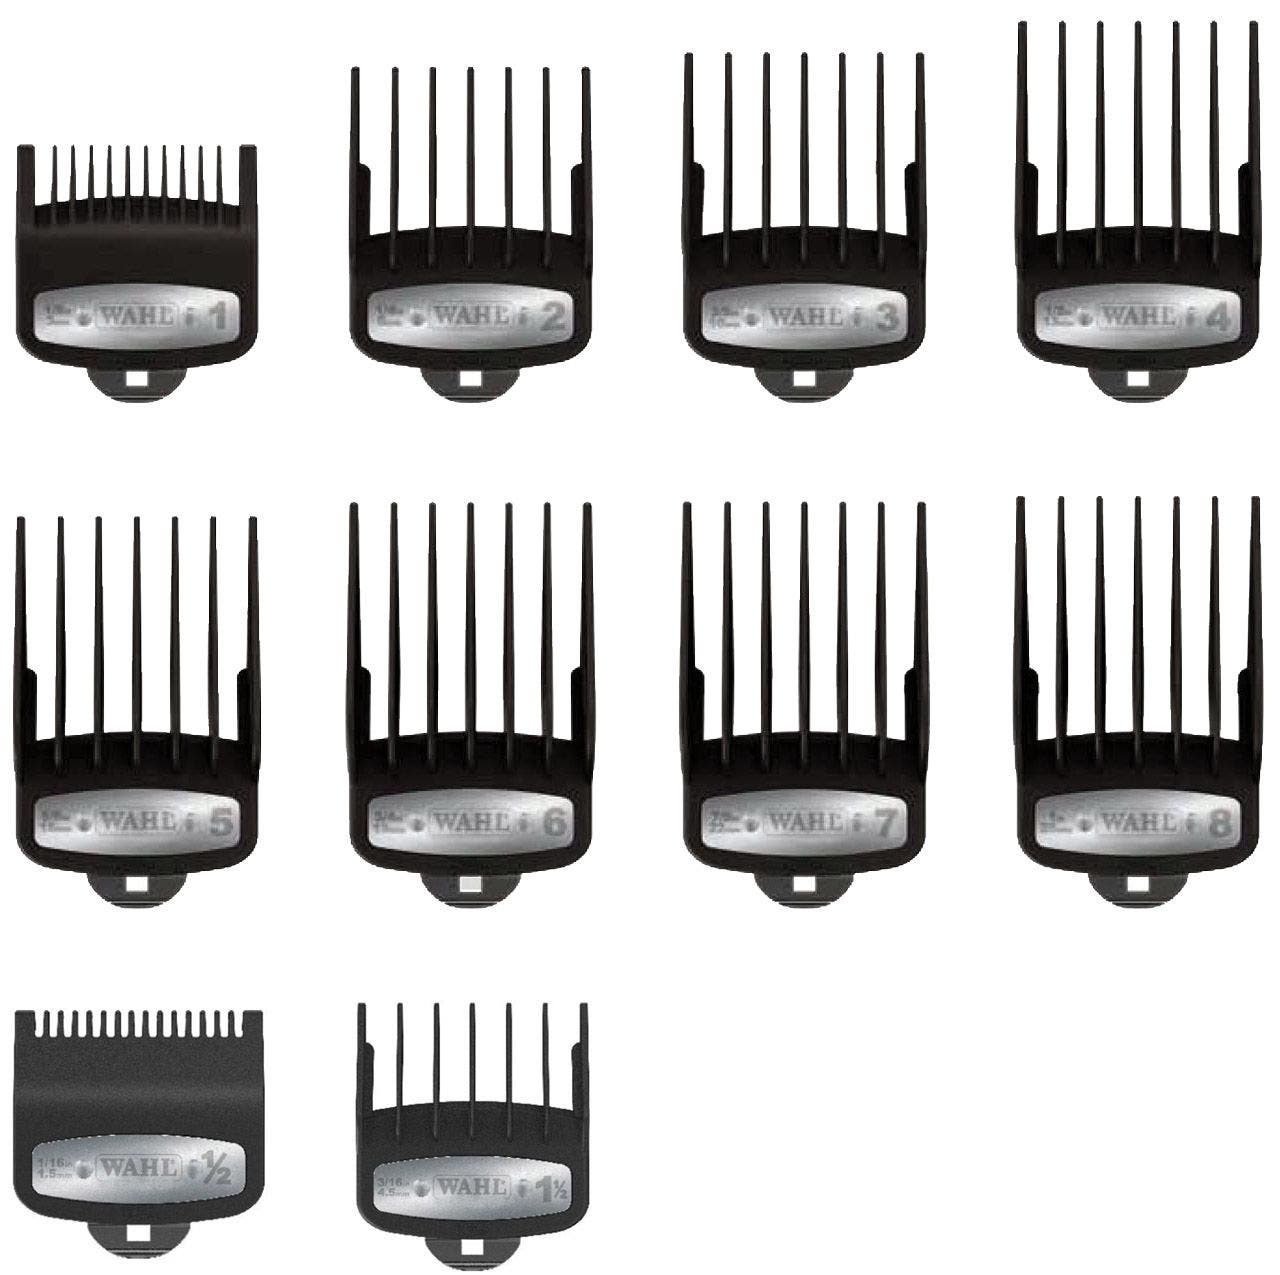 Wahl Premium Clipper Guide Comb Attachment Set: #1.2 to #8